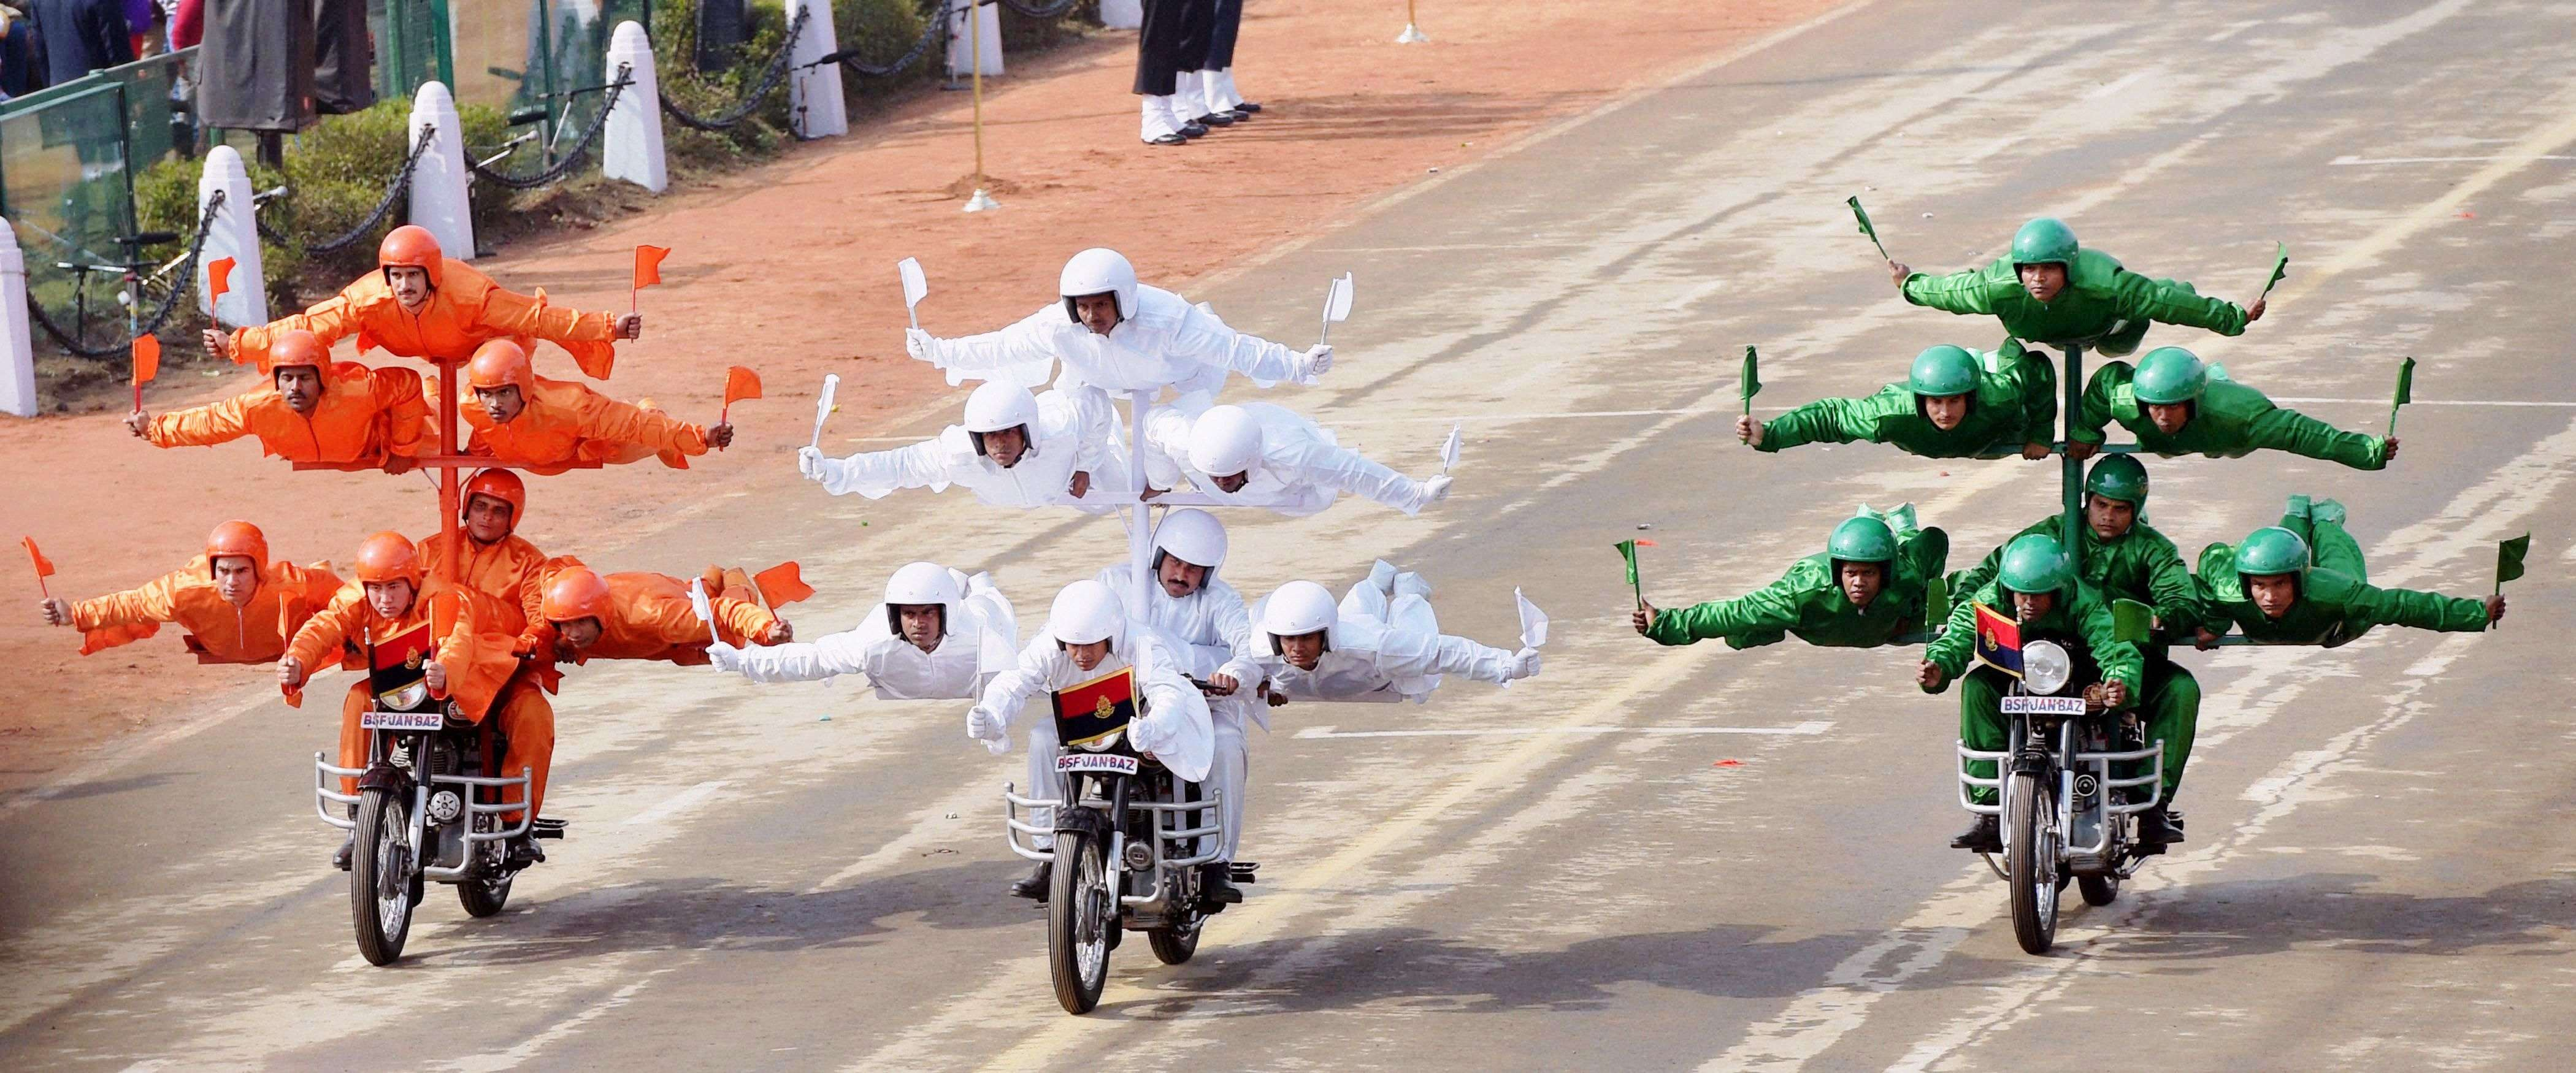 BSF daredevils during the full dress rehearsal for the Republic Day parade at Rajpath in New Delhi. (PTI photo by Manvender Vashist)